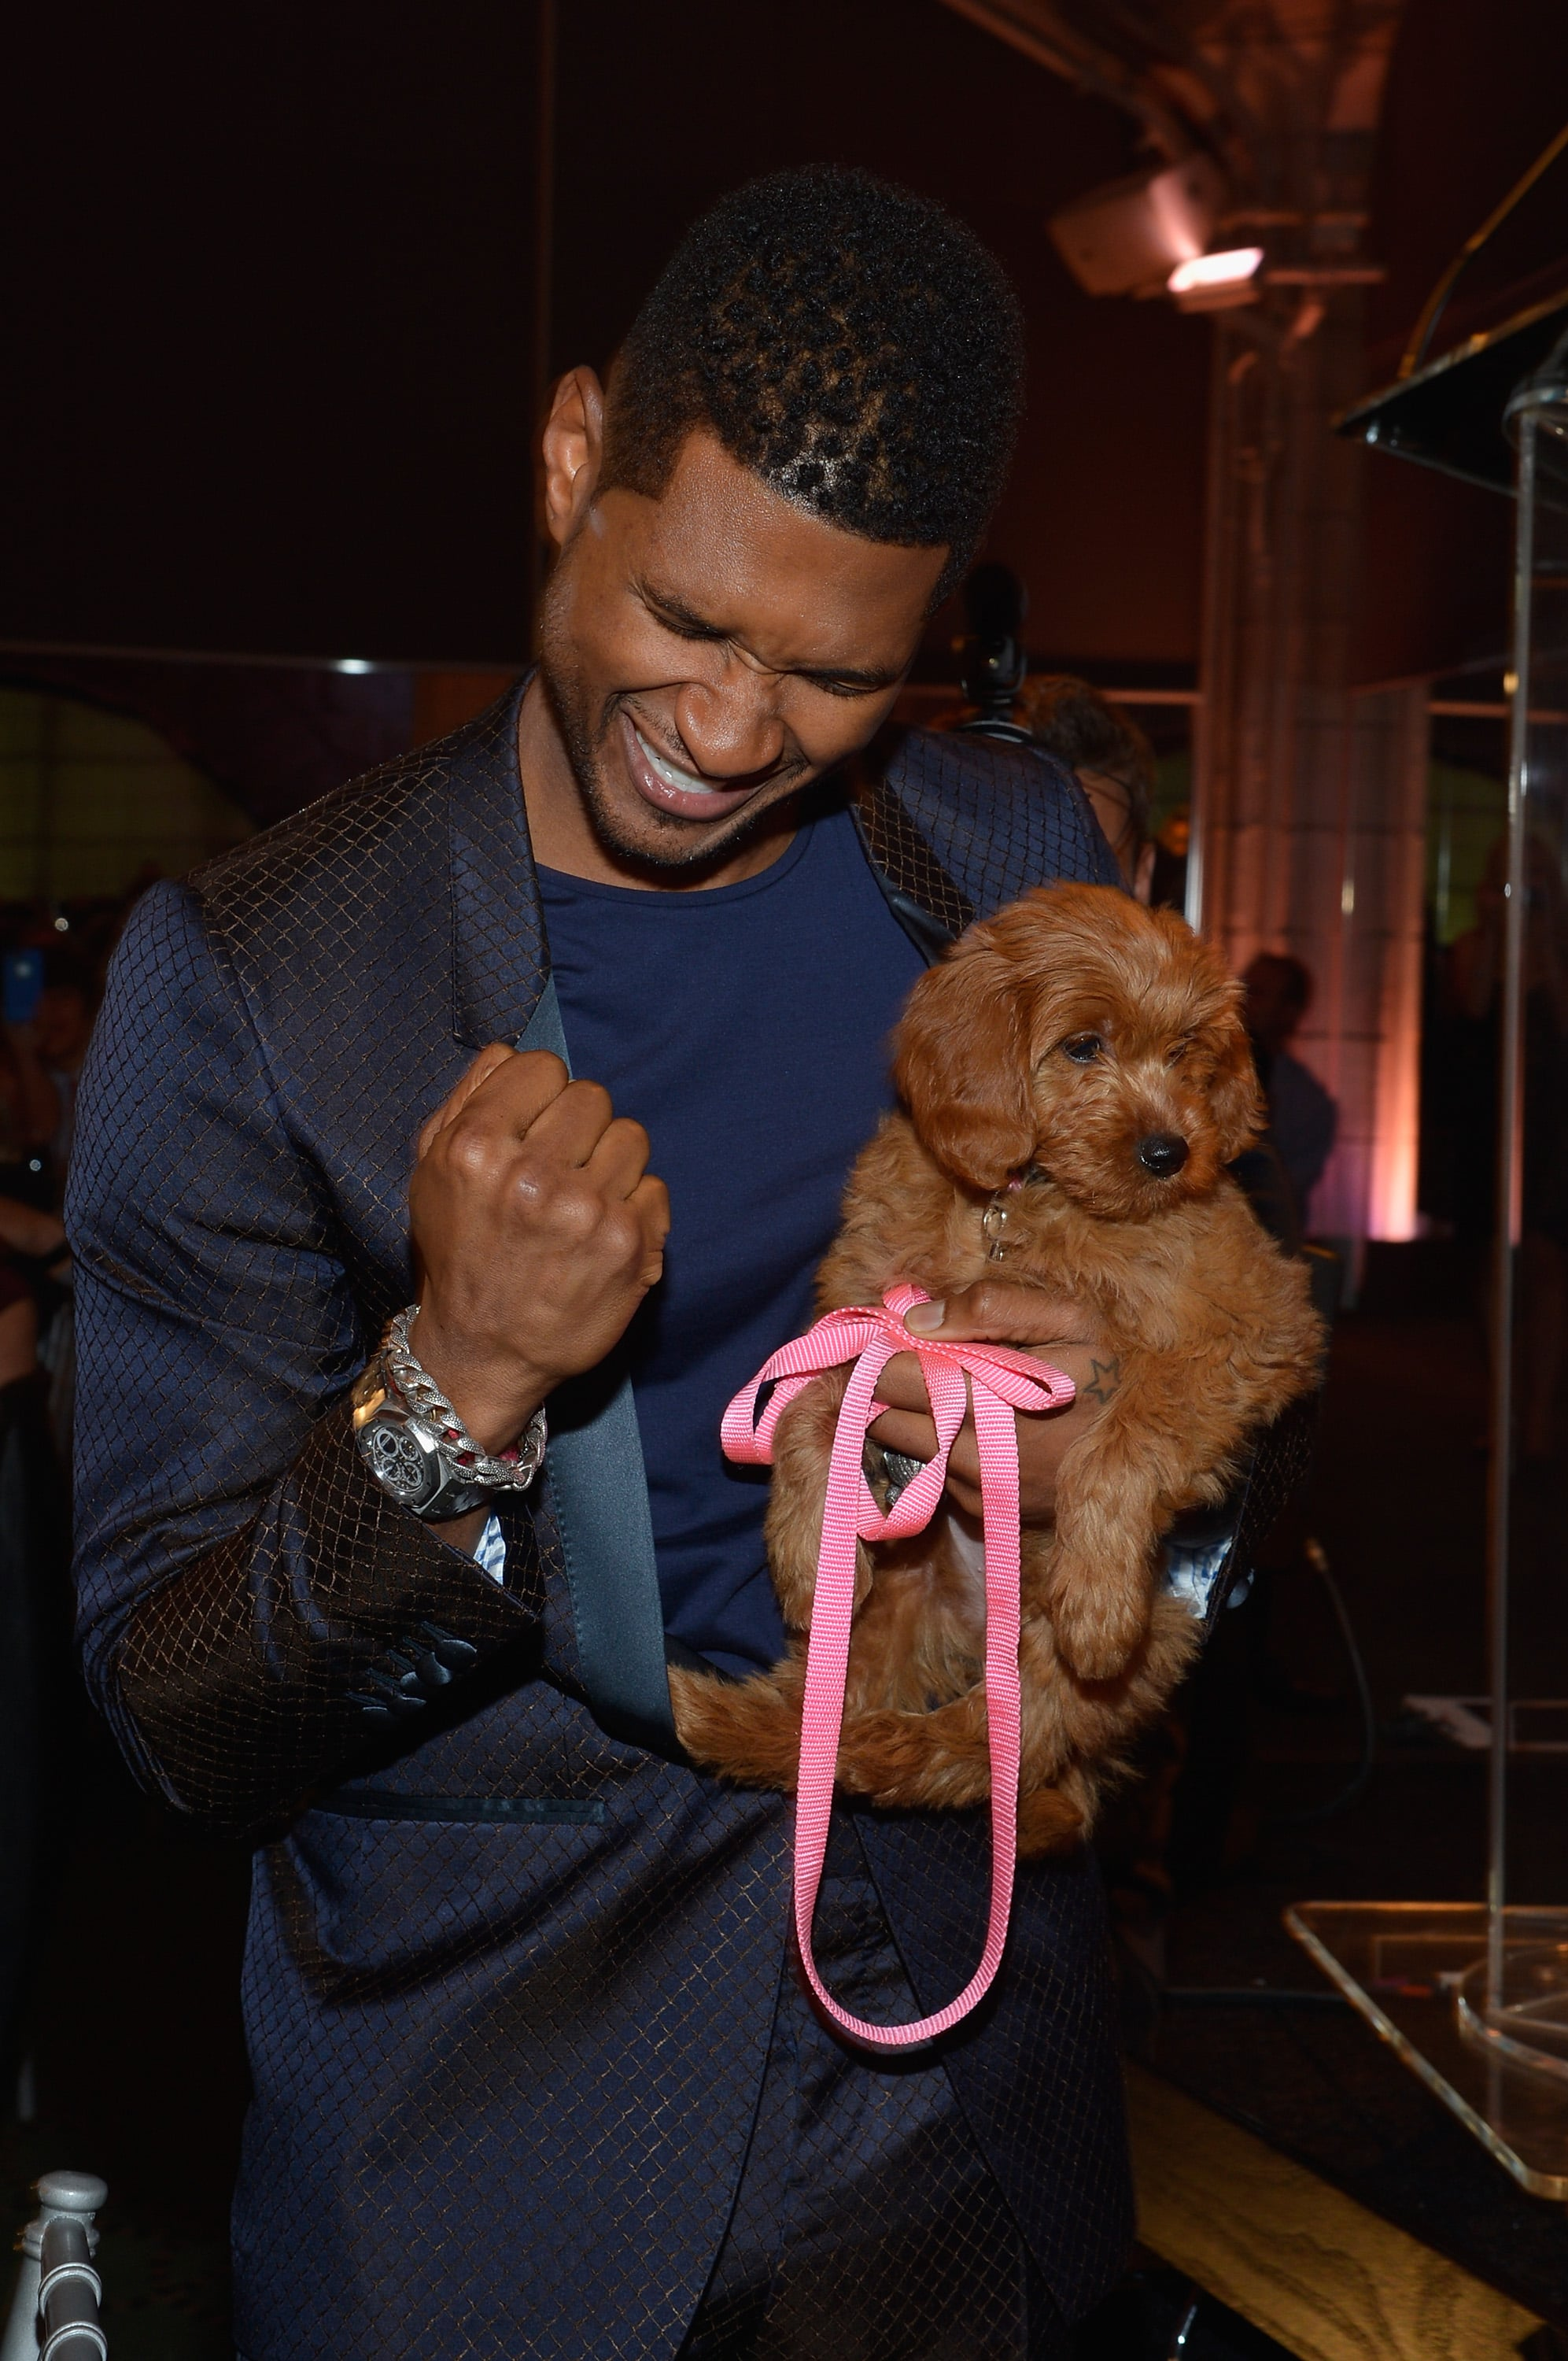 Usher famously bid $12,000 for a Goldendoodle puppy at the Pencils of Promise Gala in October 2012 —look how excited he was about his win!